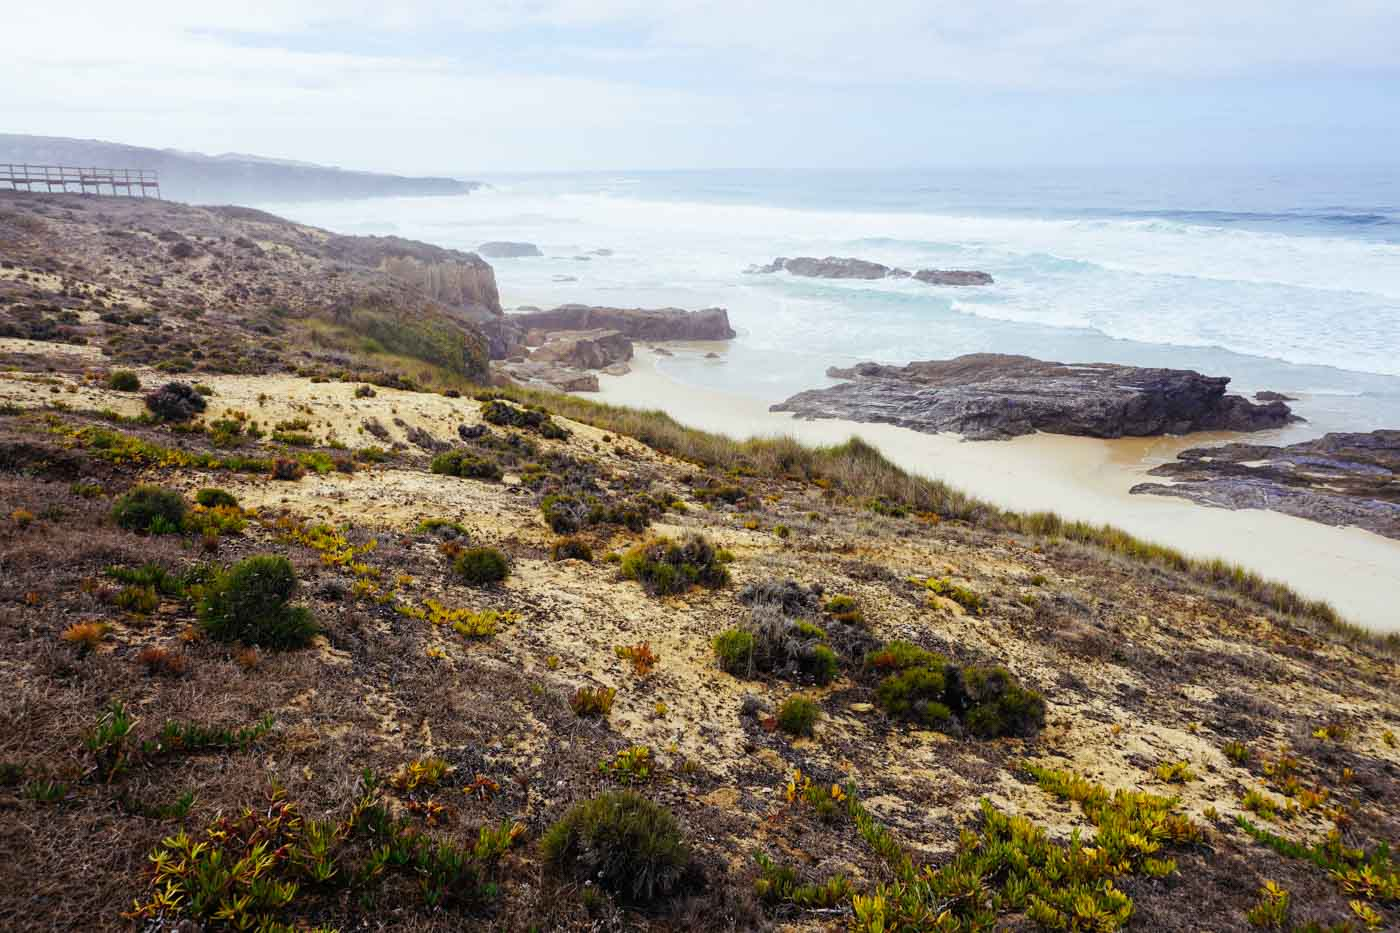 Secret spots in the Alentejo, Portugal #alentejo #portugal #beaches #travel